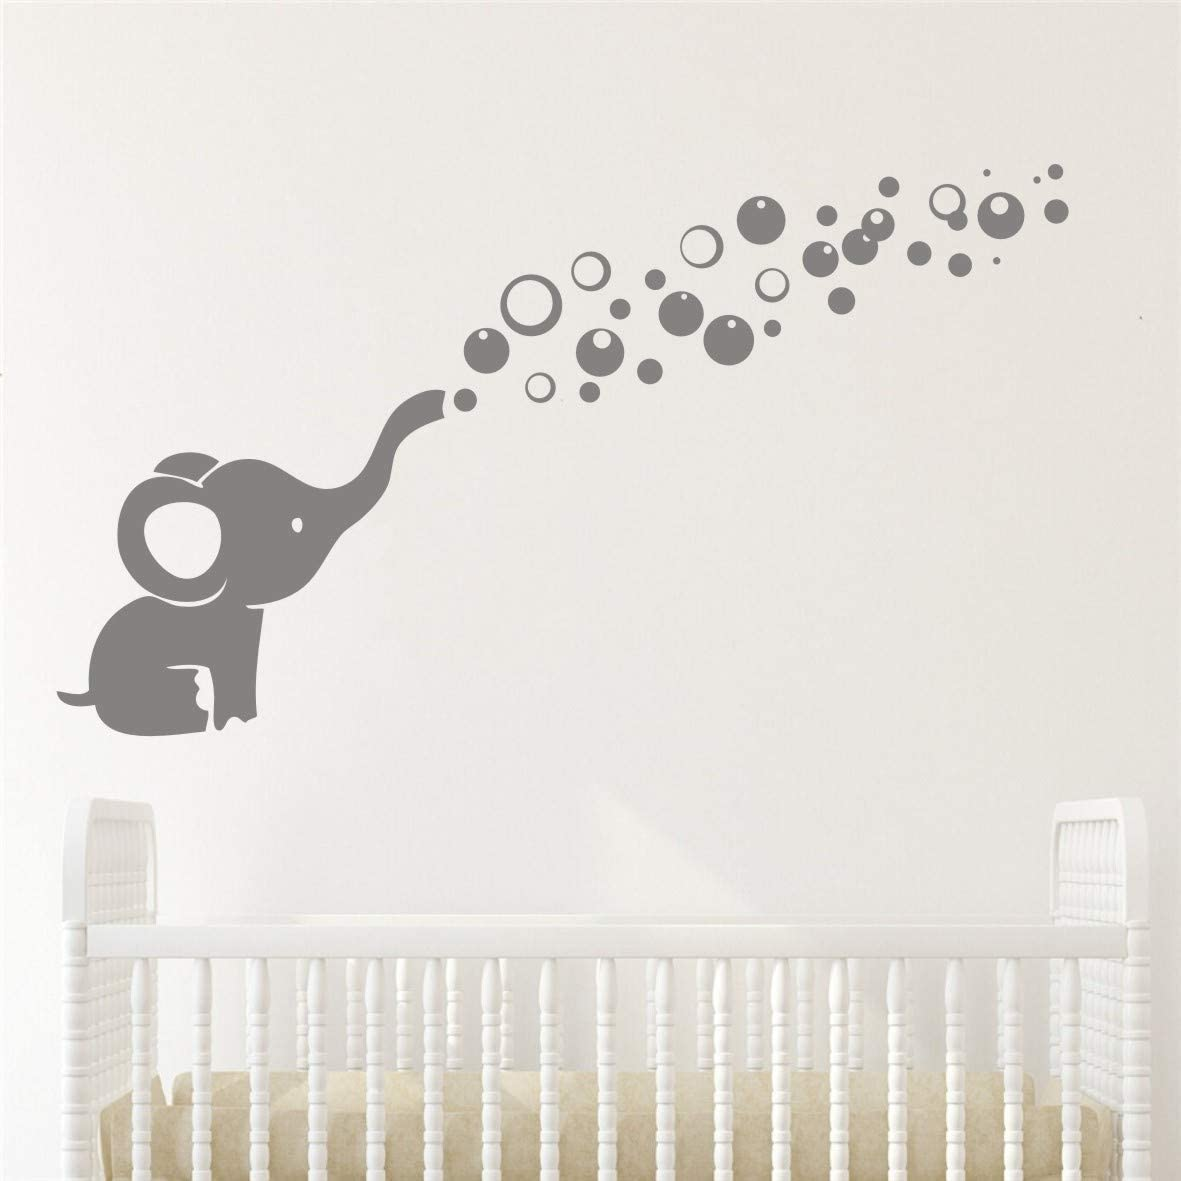 Removable Nursery Room Wall Decor Cute Elephant Blowing Bubbles Wall Decal Art Vinyl Wall Decor Sticker for Baby Bedroom (Gray)